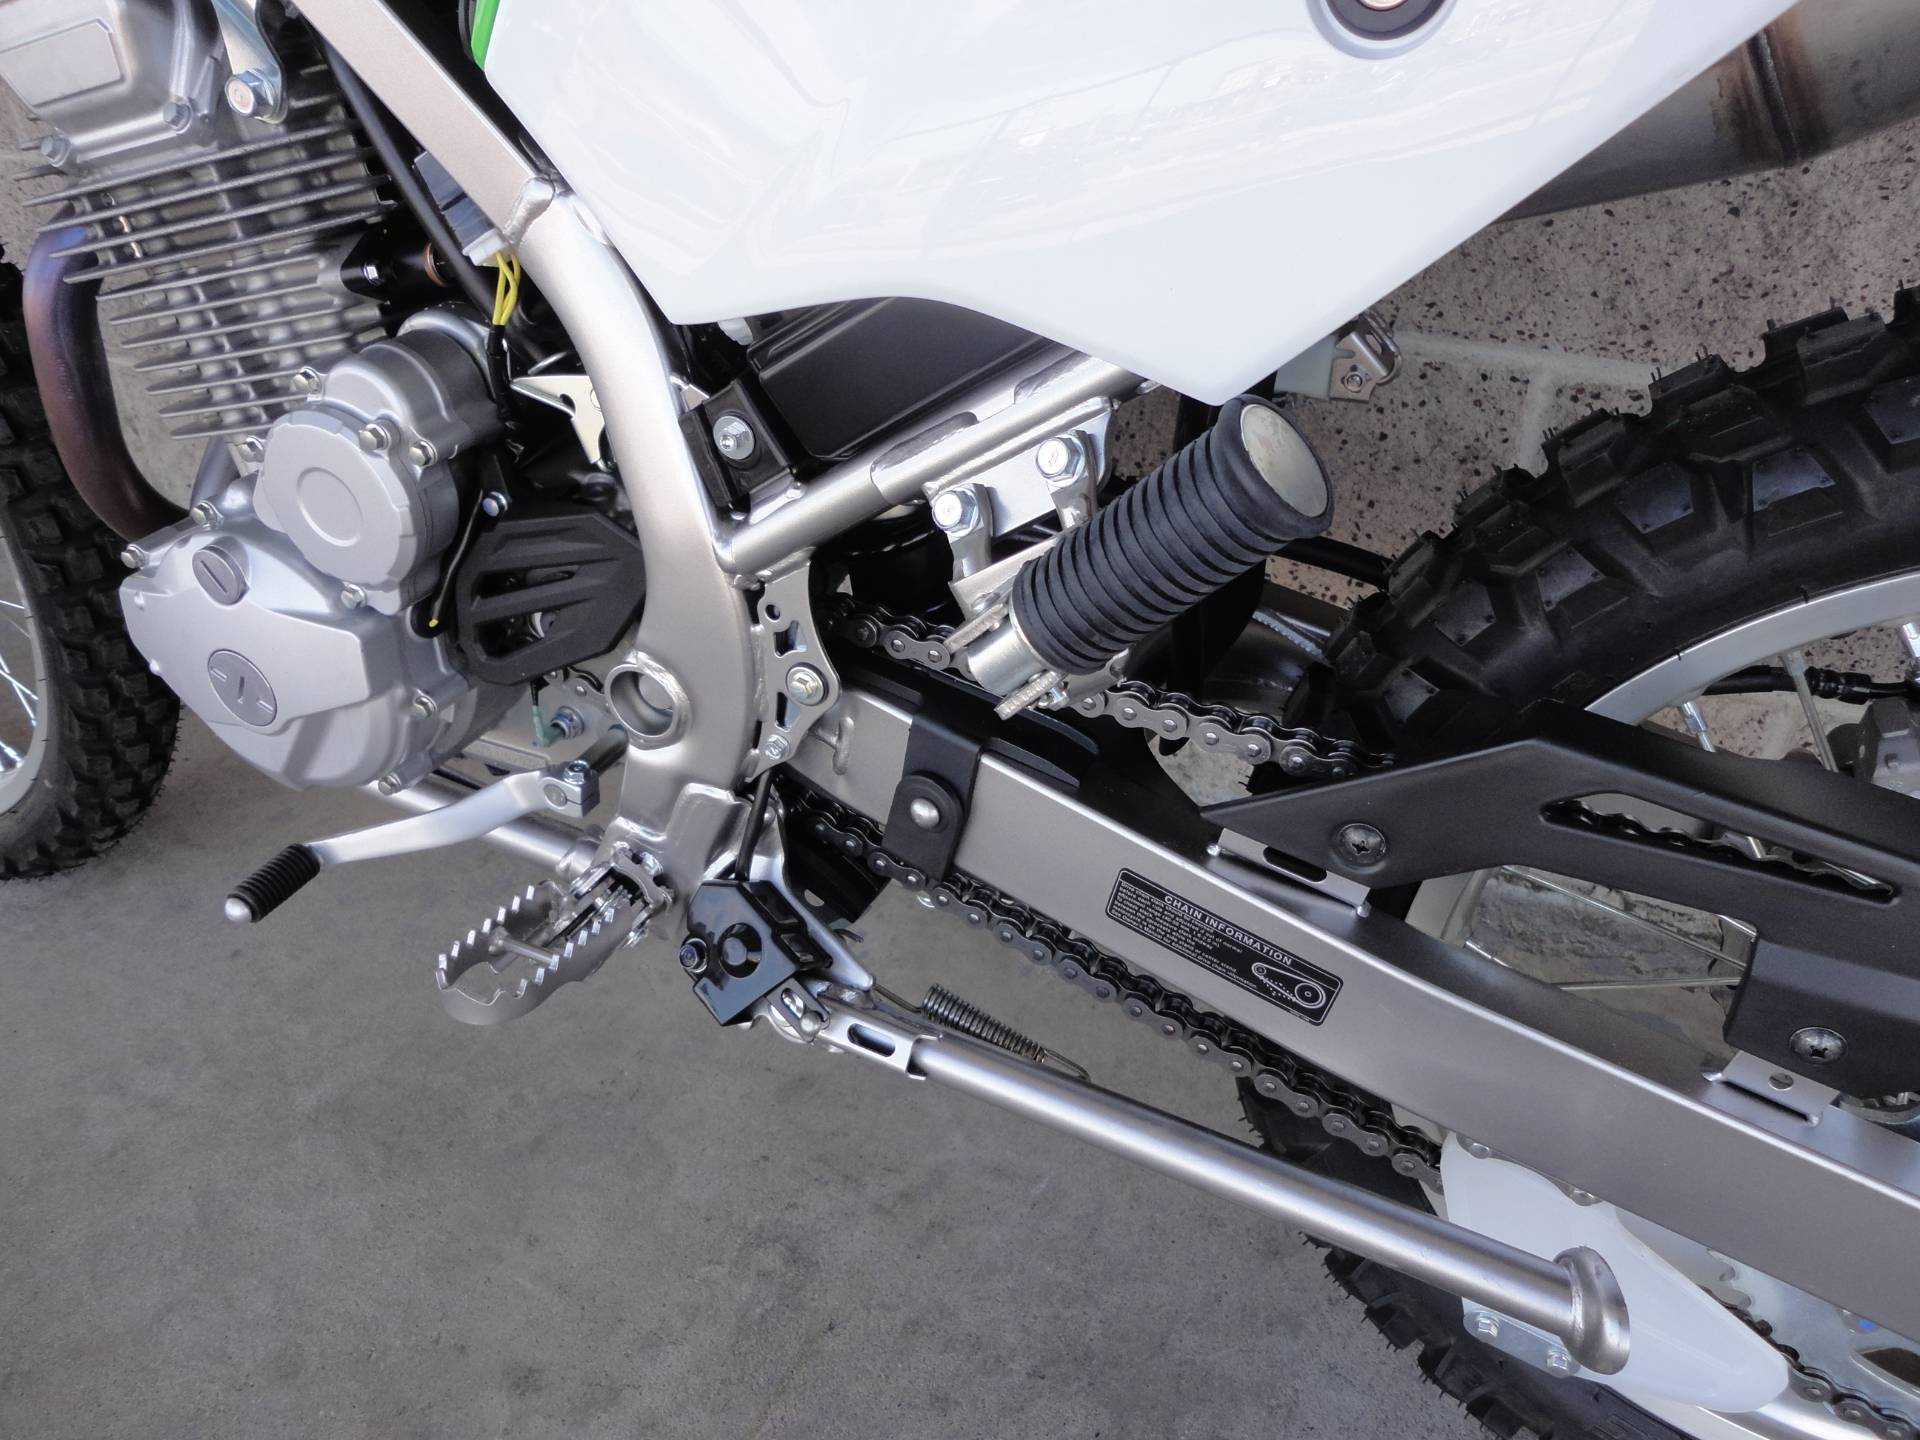 2020 Kawasaki KLX 230 in Denver, Colorado - Photo 6